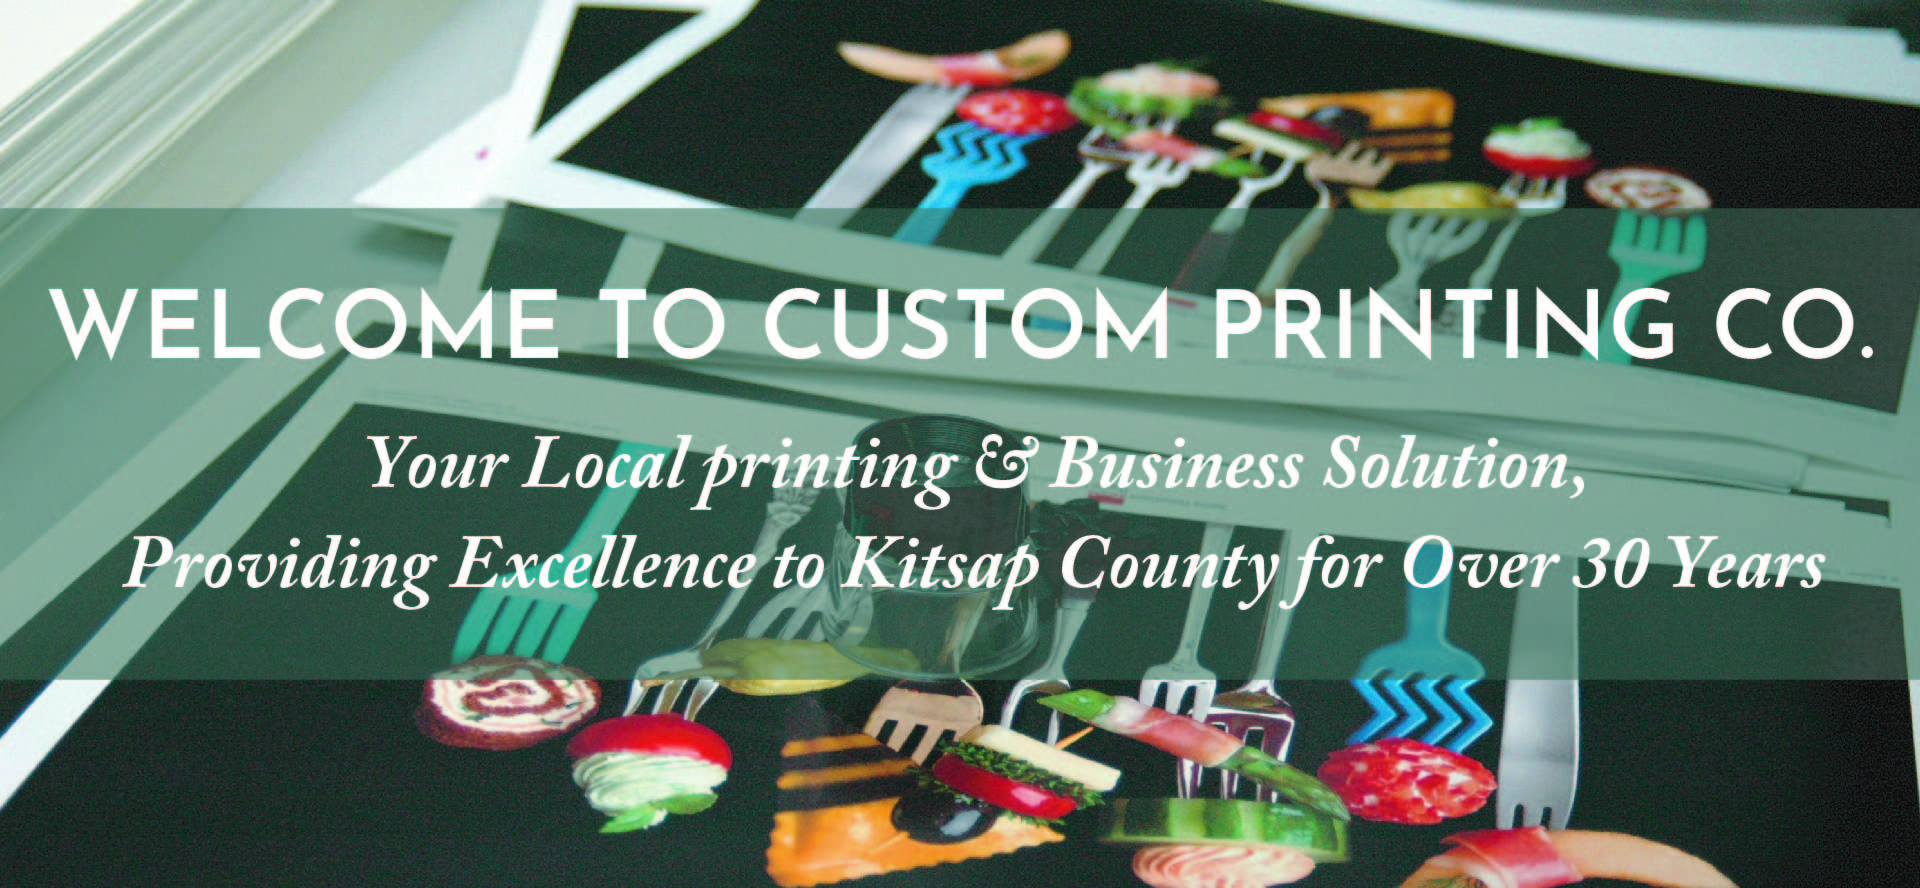 Welcome To Custom Printing